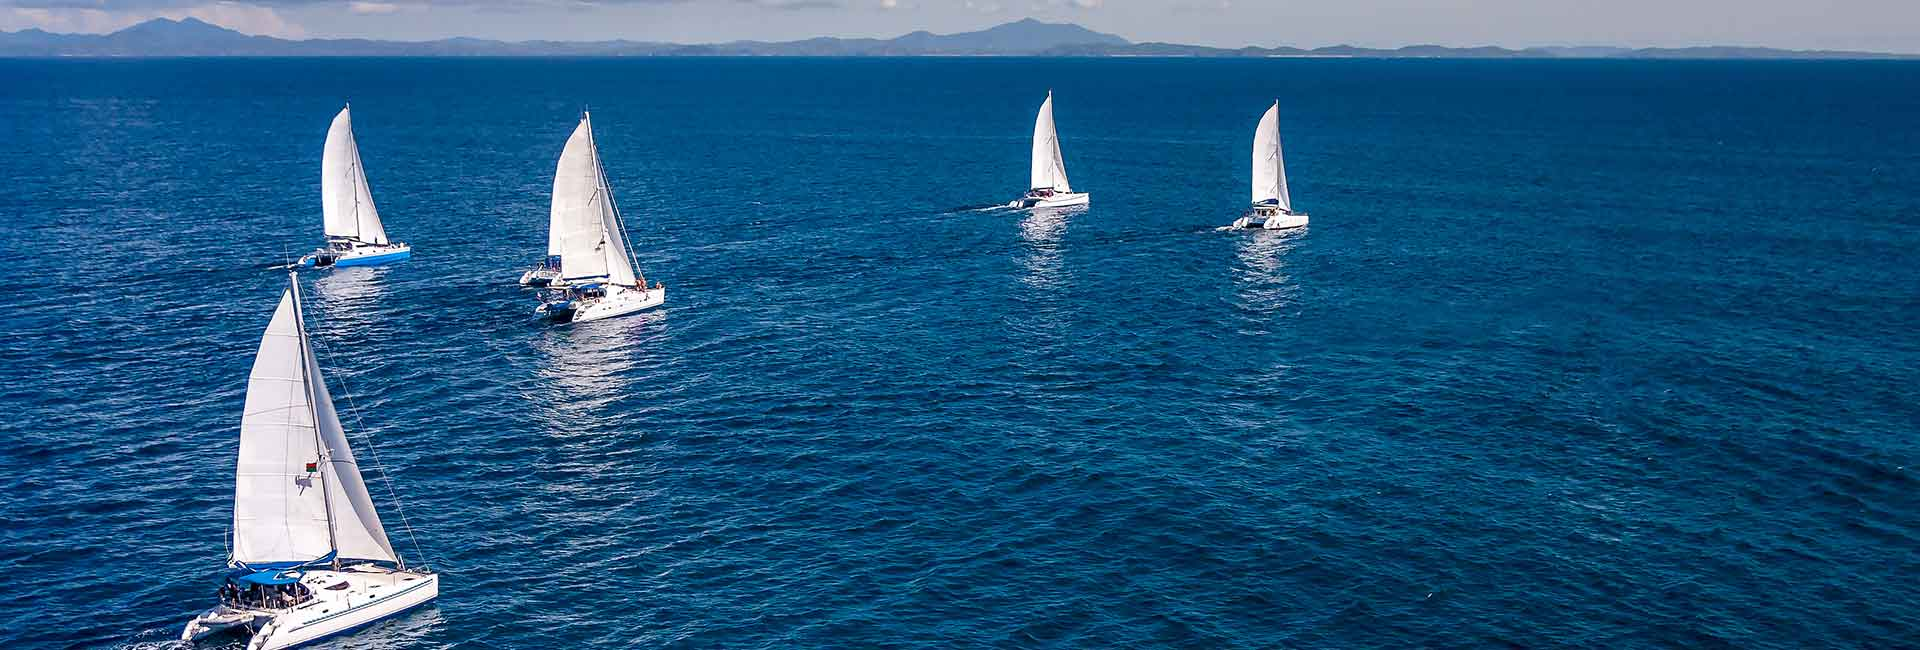 Yachts in the ocean sailing together